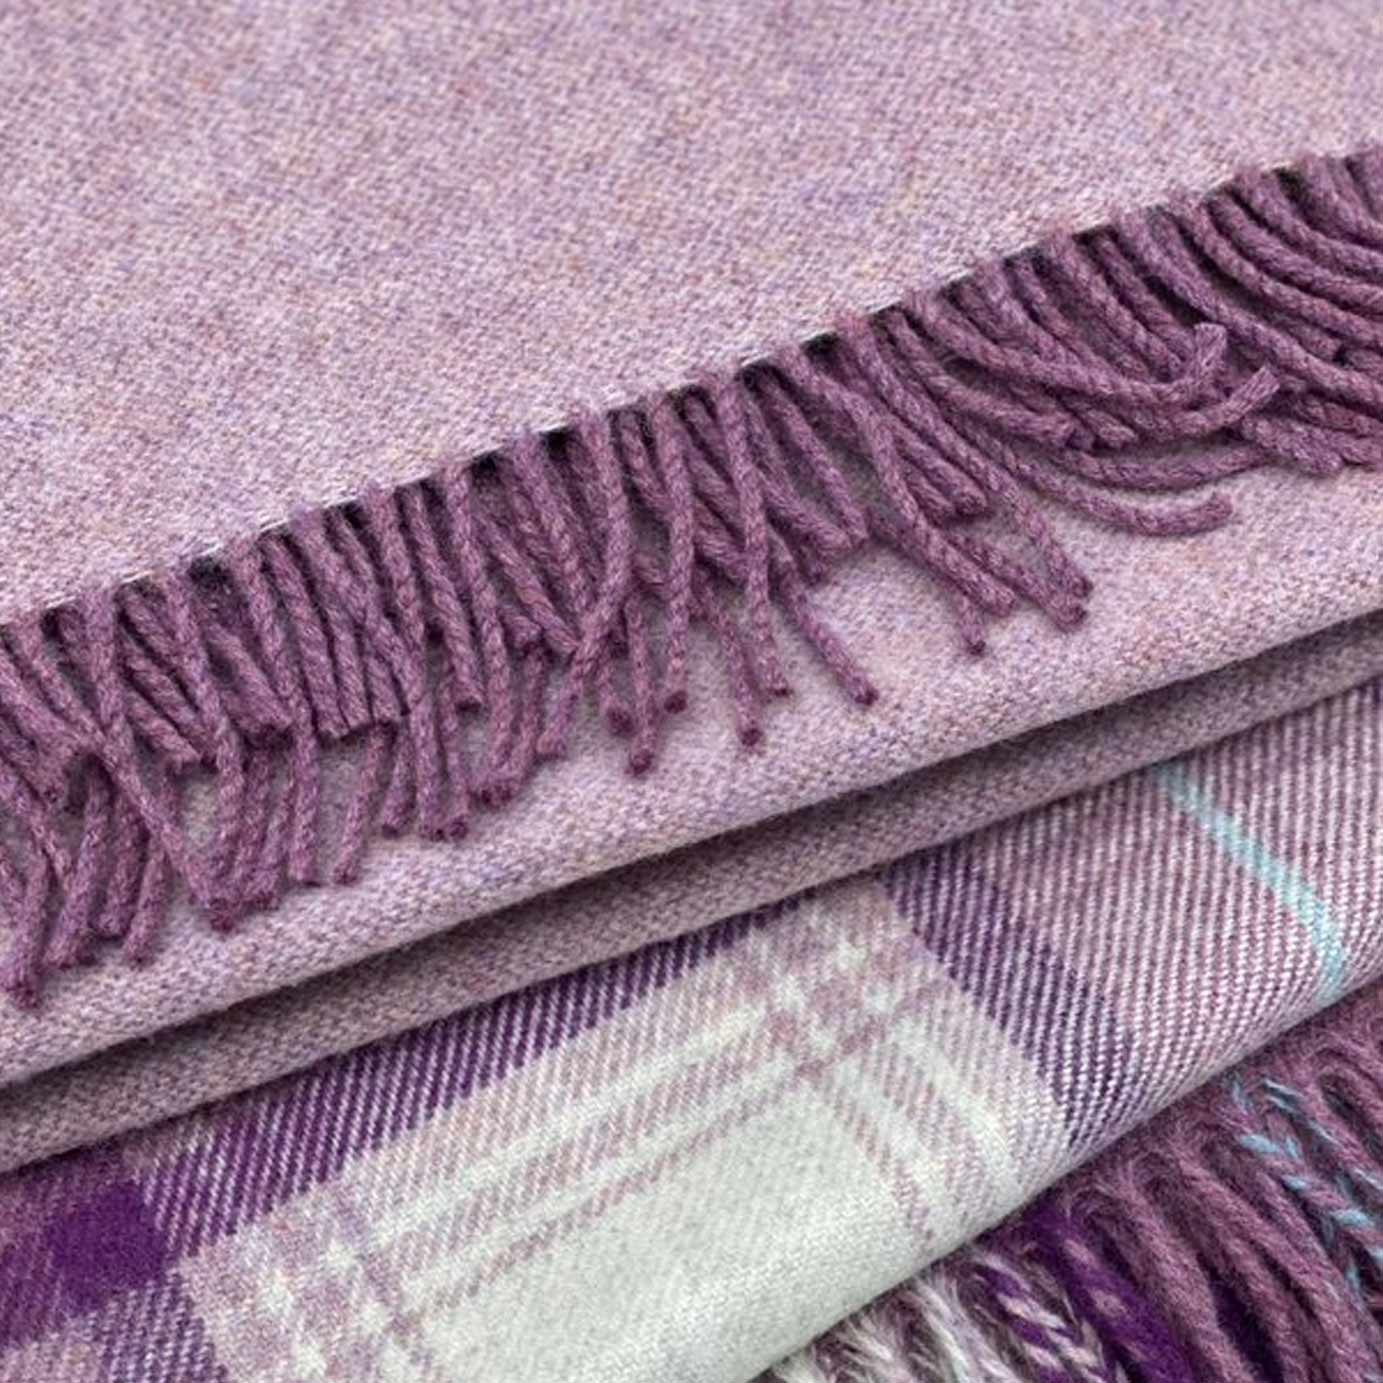 Speyside Heather Reversible Plain Merino Wool Blanket